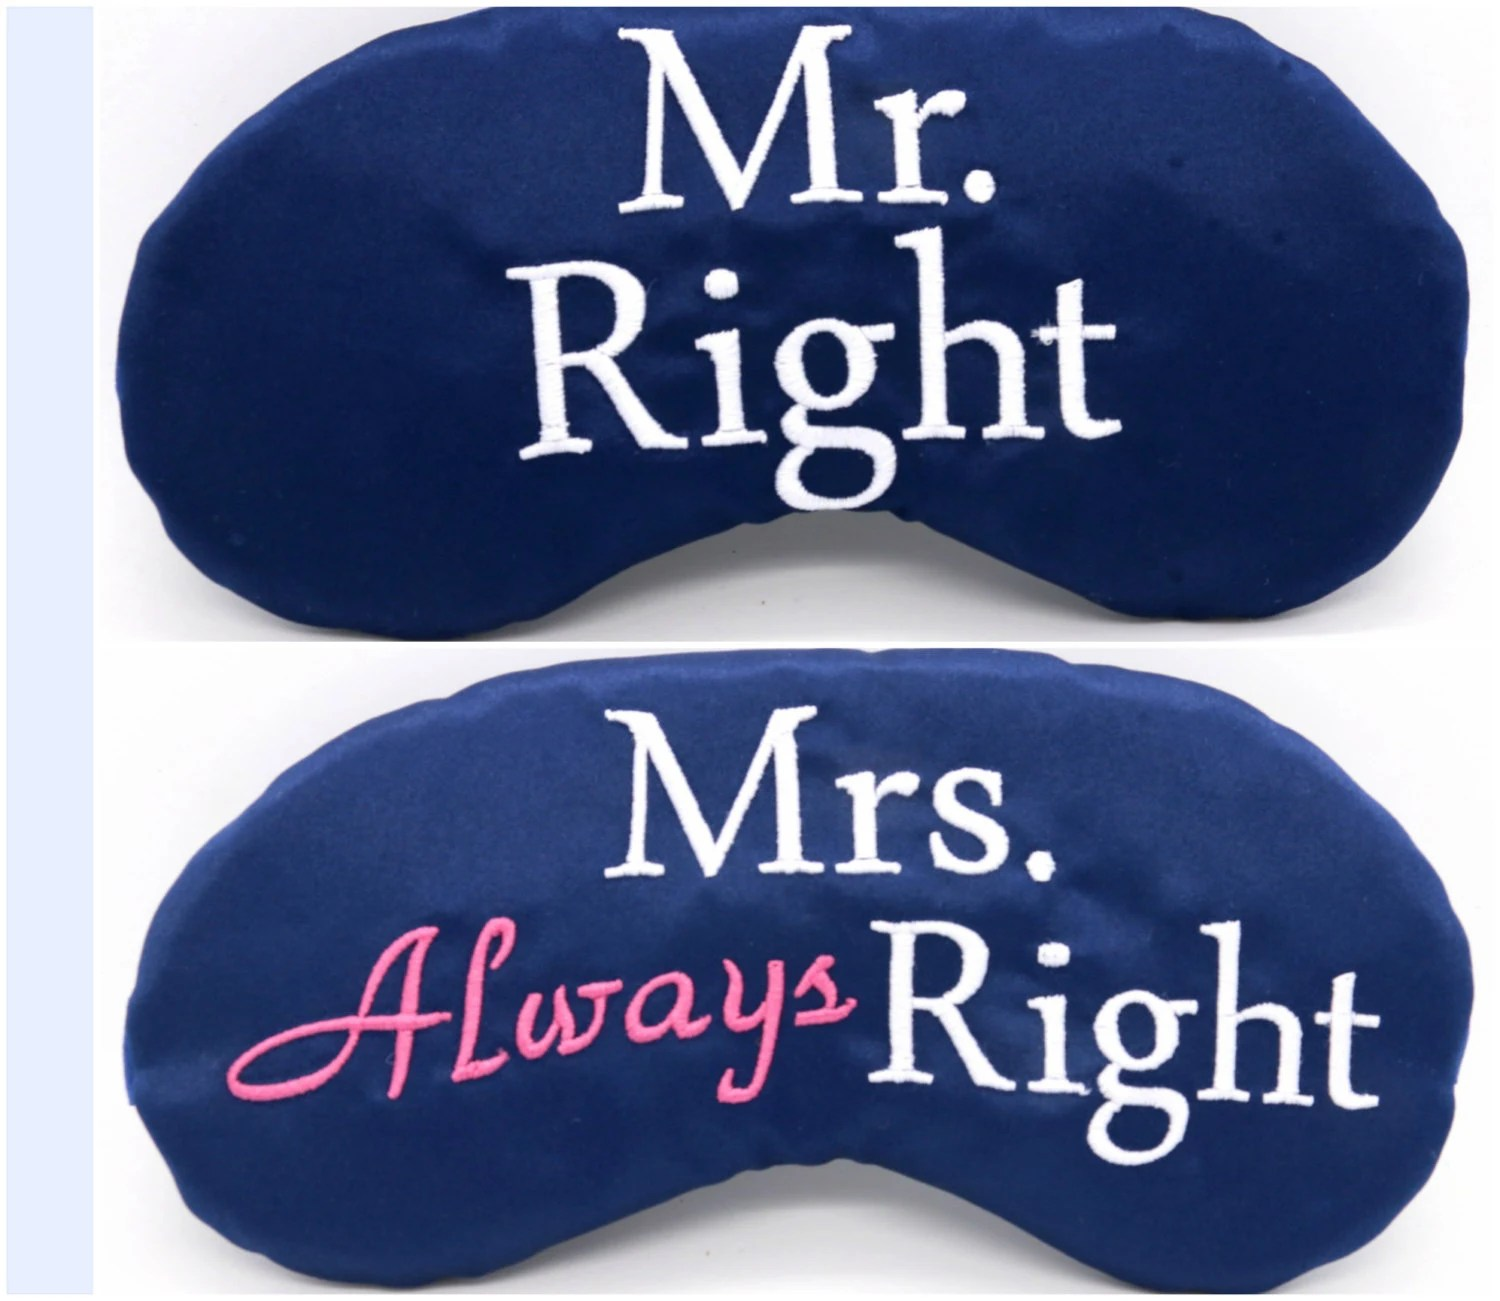 Mr Right Mrs Always Right Bettwäsche Mr Right And Mrs Always Right Sleep Masks His And Hers